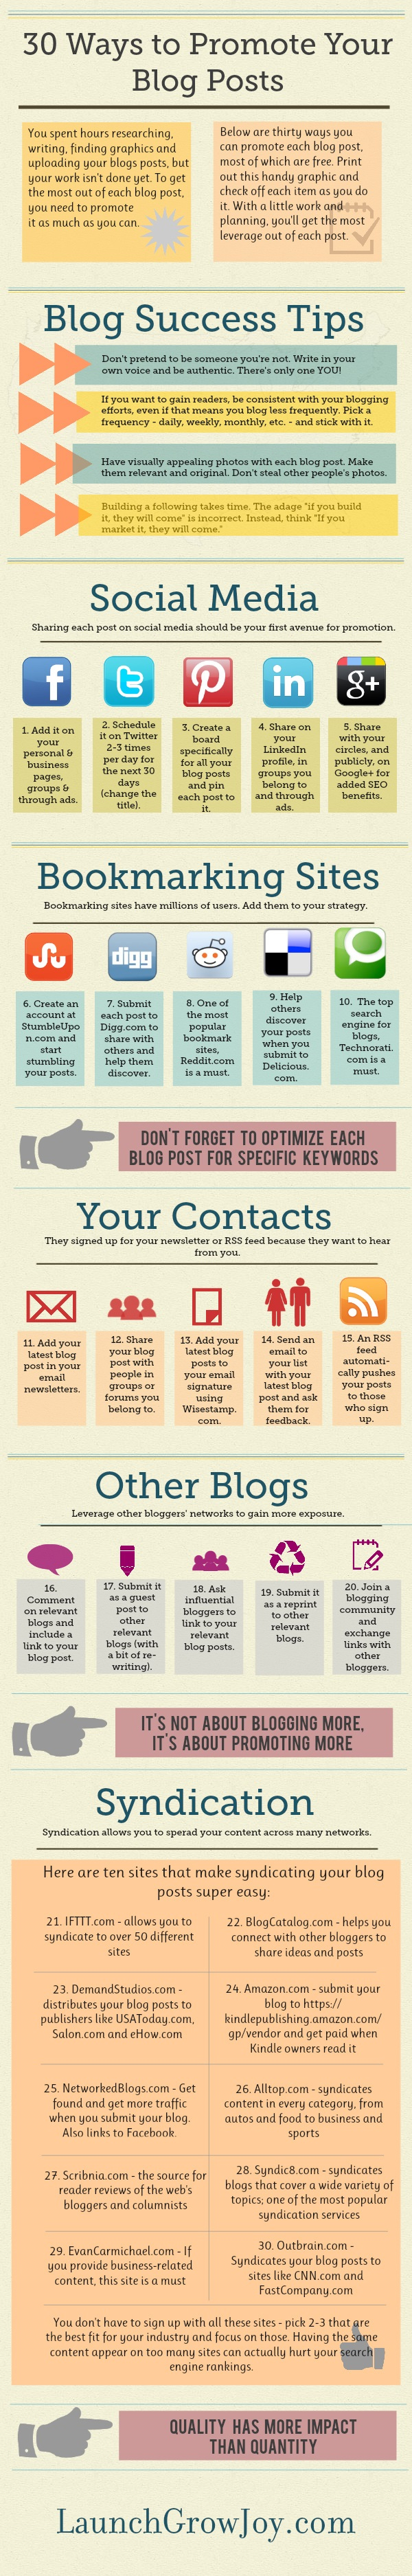 Tips on promoting blogs